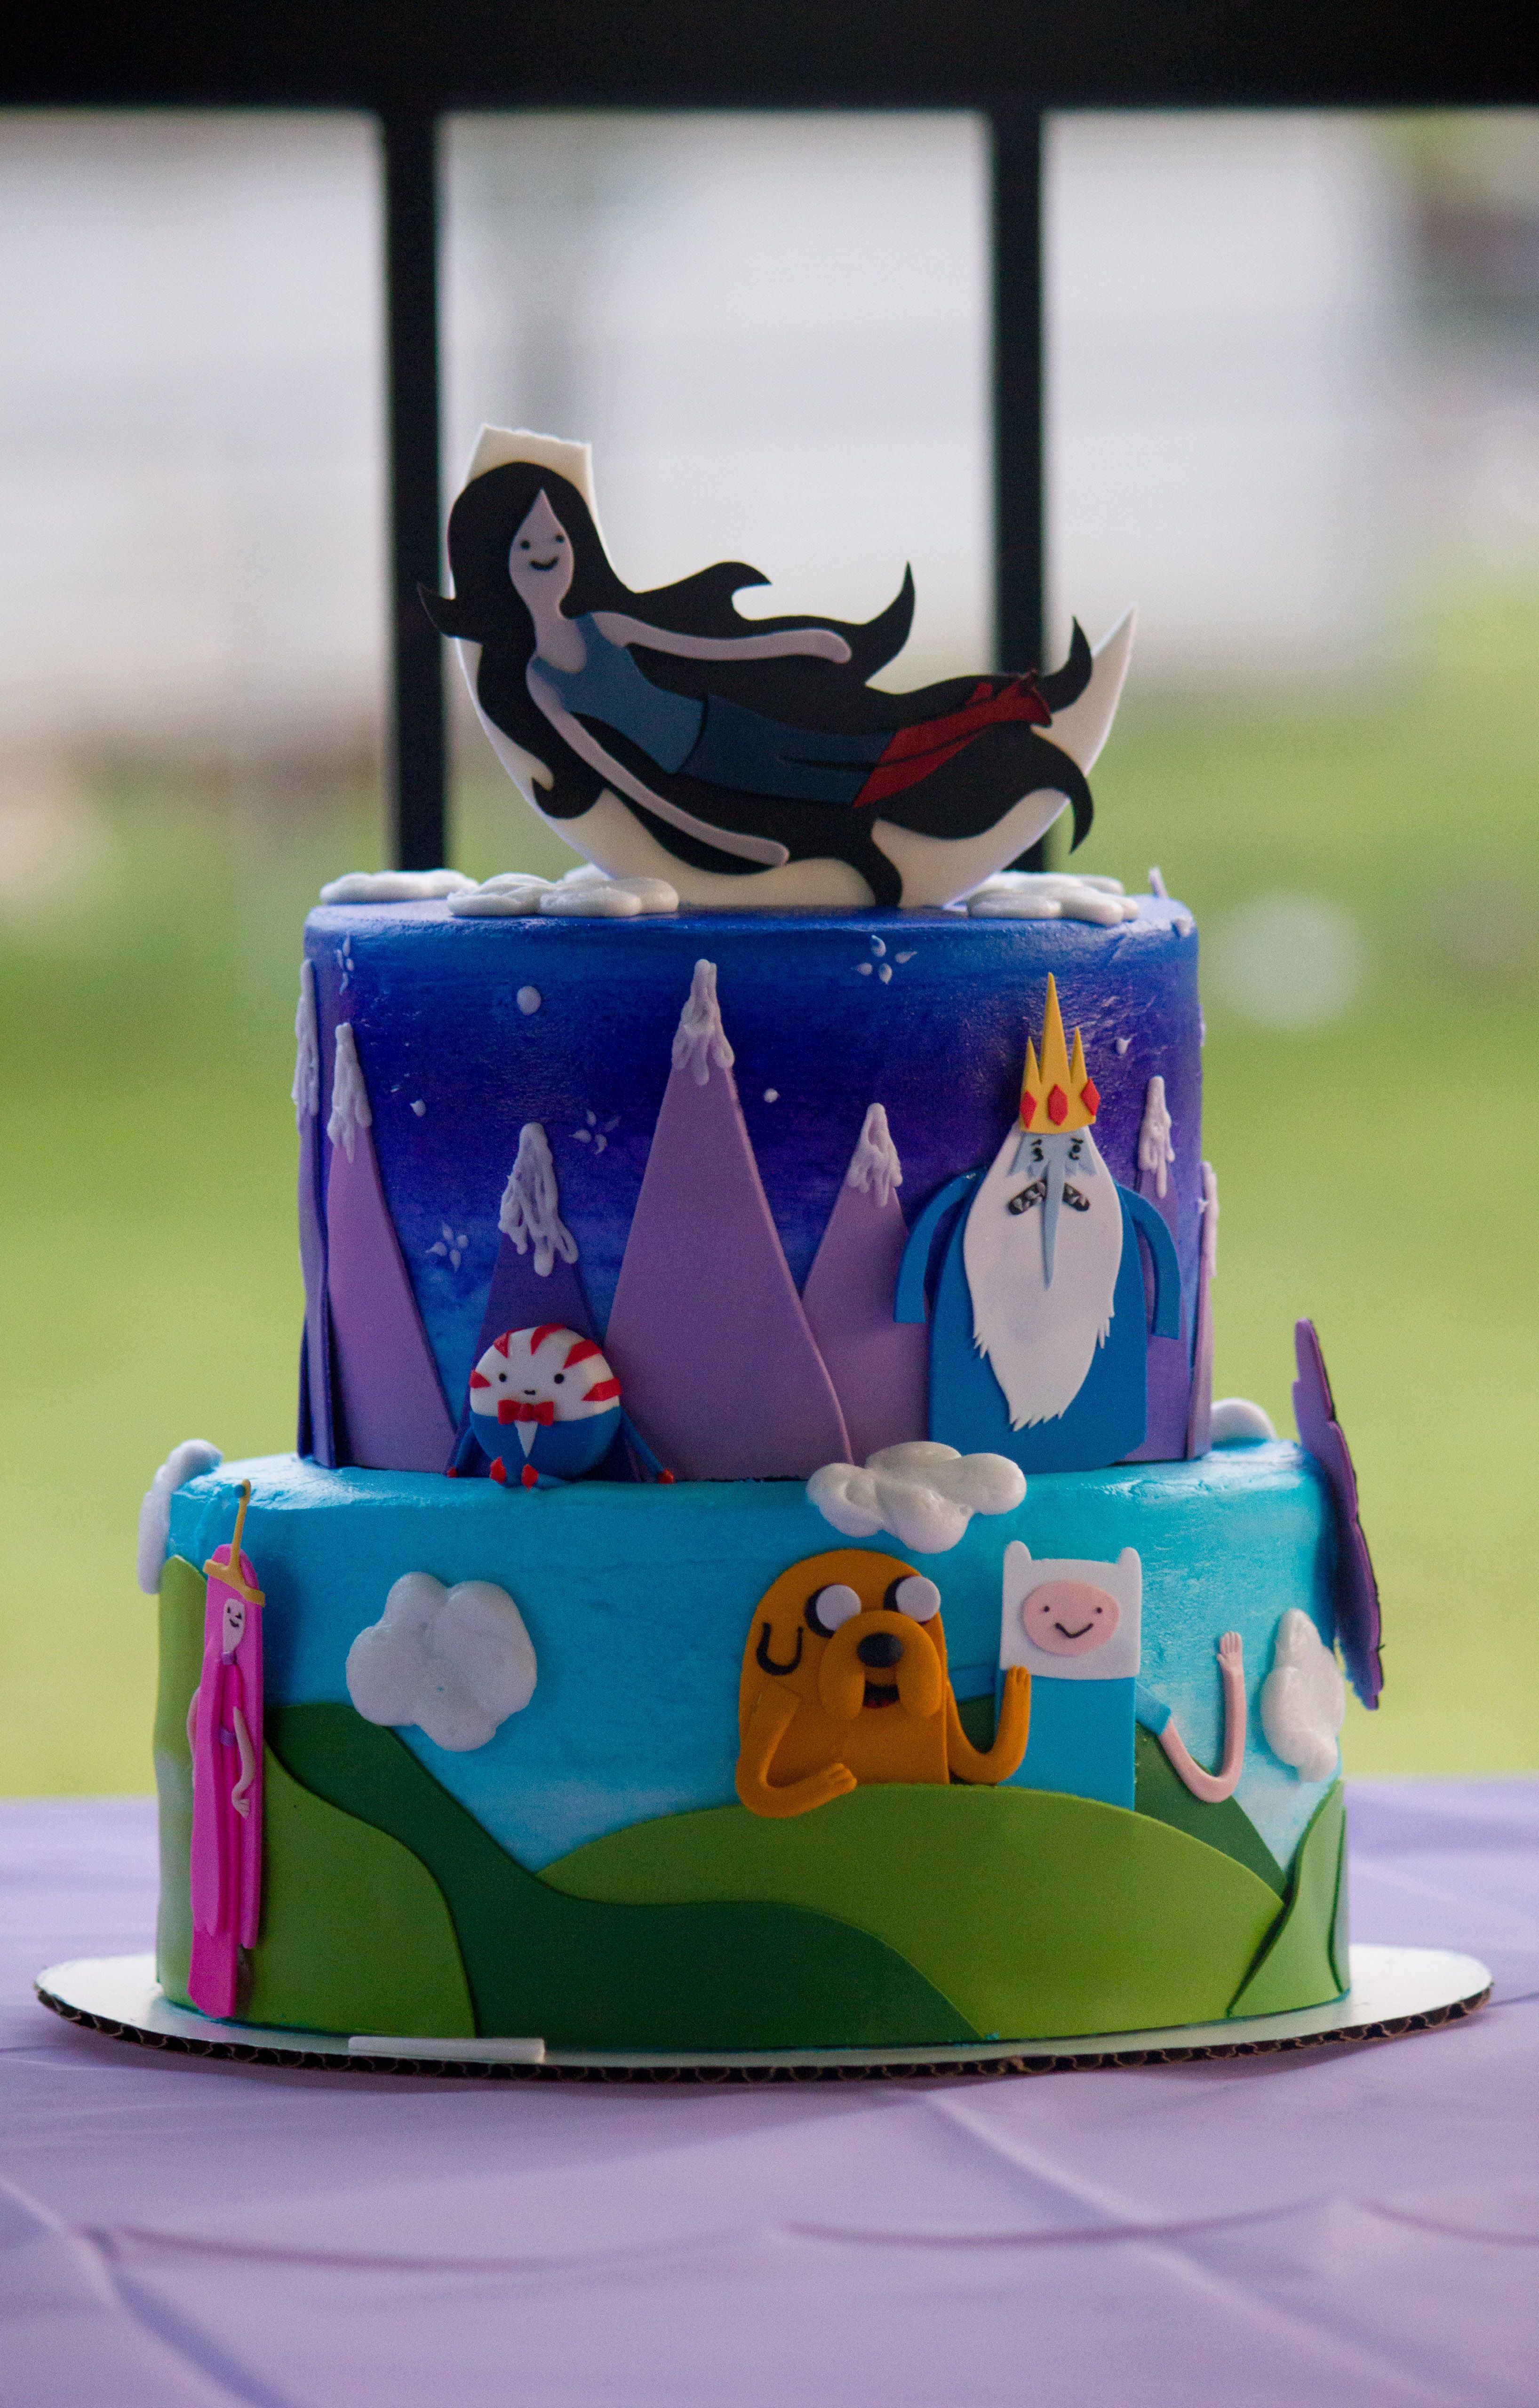 Emilies Adventure Time Birthday Cake From Eat My Cake In Dallas Tx